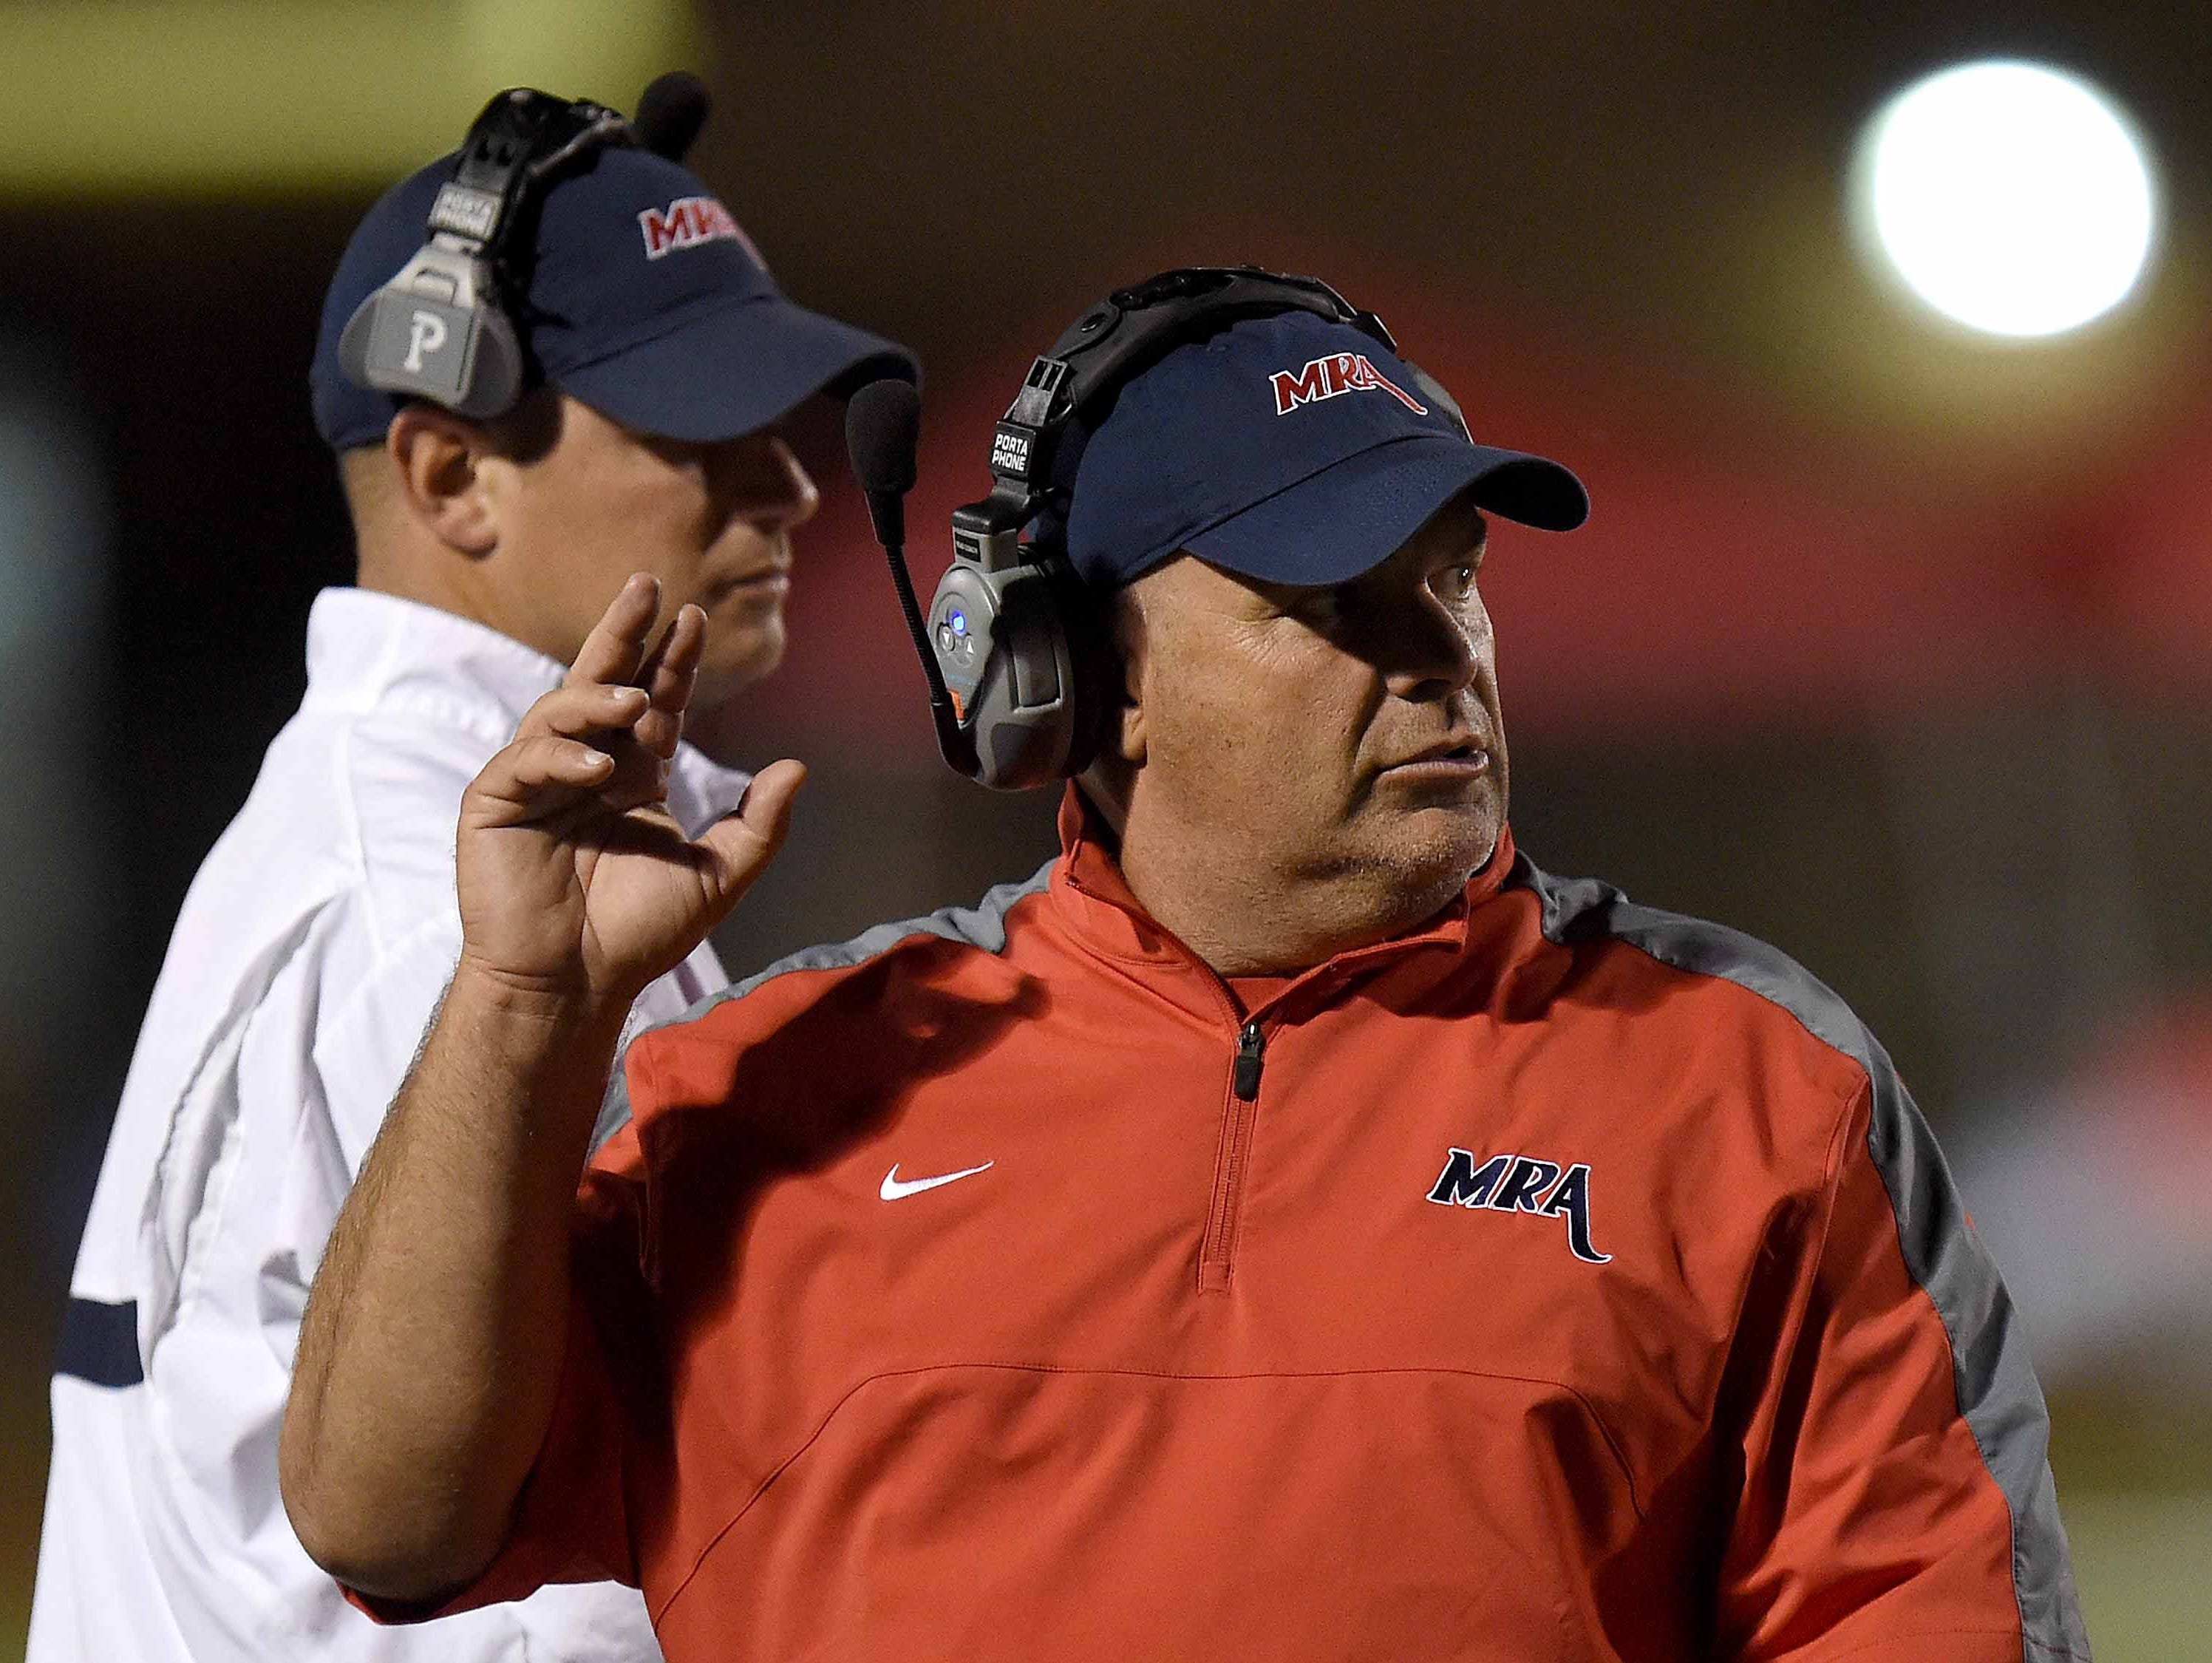 MRA head coach Herbert Davis guides the Patriots against the Lamar Raiders on Friday, October 30, 2015, at Madison-Ridgeland Academy in Madison, Miss.